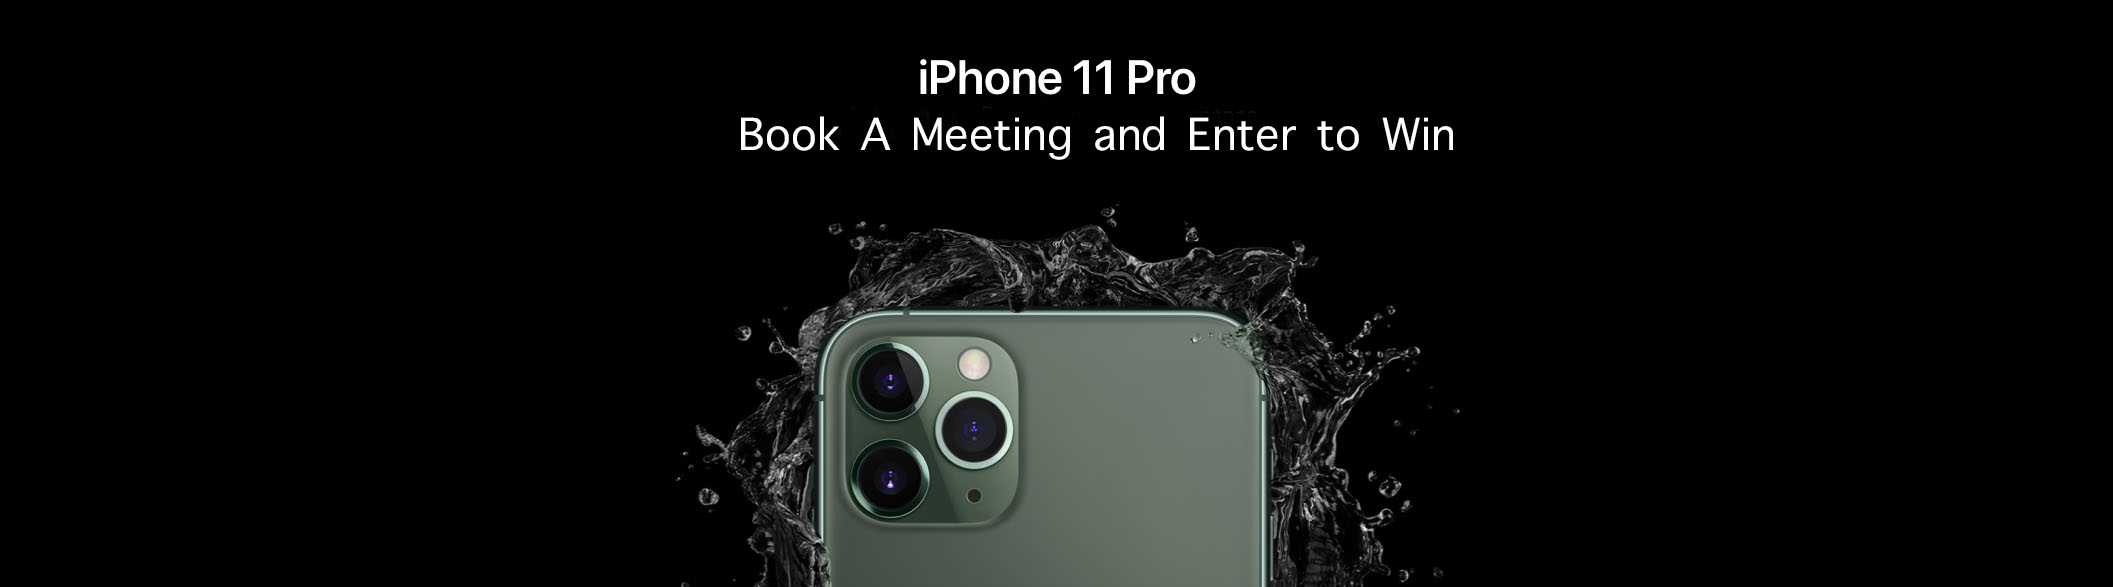 Book A Meeting and Enter to Win an iPhone 11 Pro